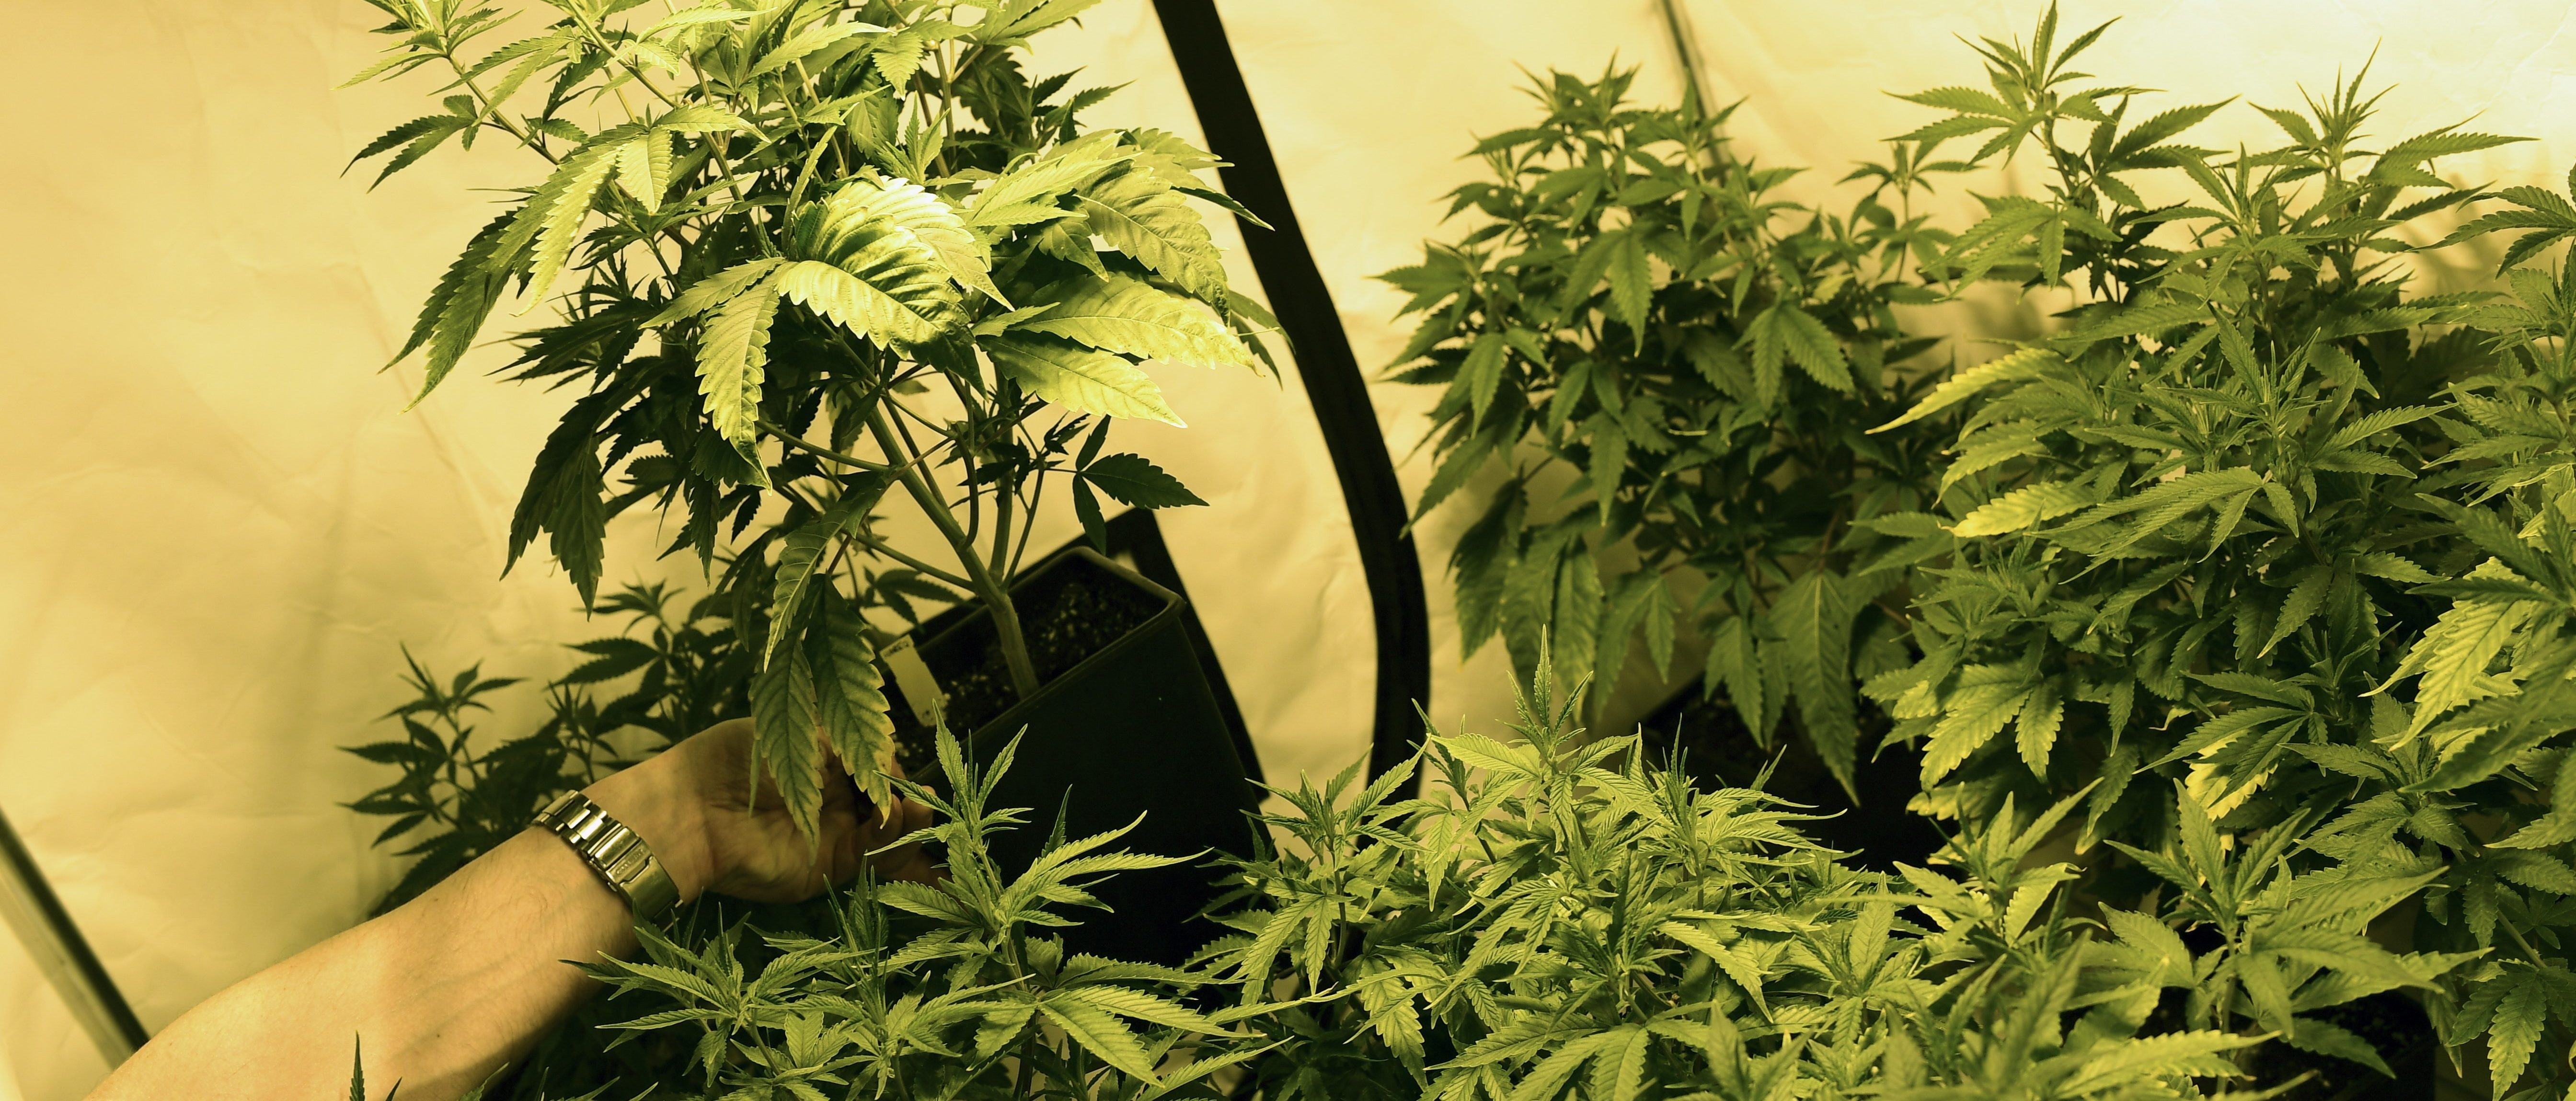 US Government Growing Enormous Crop Of Marijuana, Largest In 5 Years   The Daily Caller